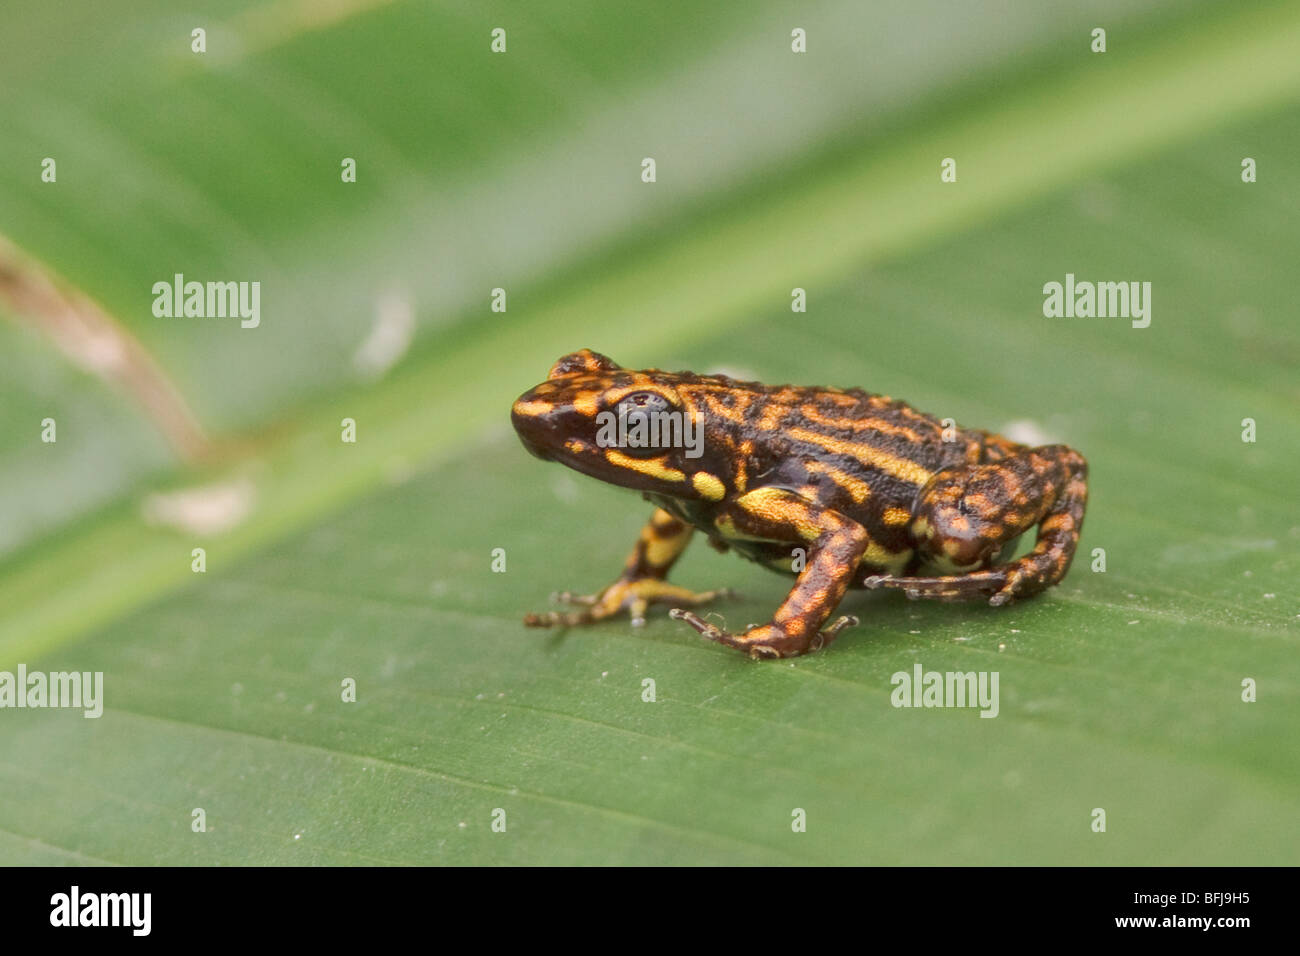 A Poison-dart Frog perched on a leaf in northwest Ecuador. - Stock Image